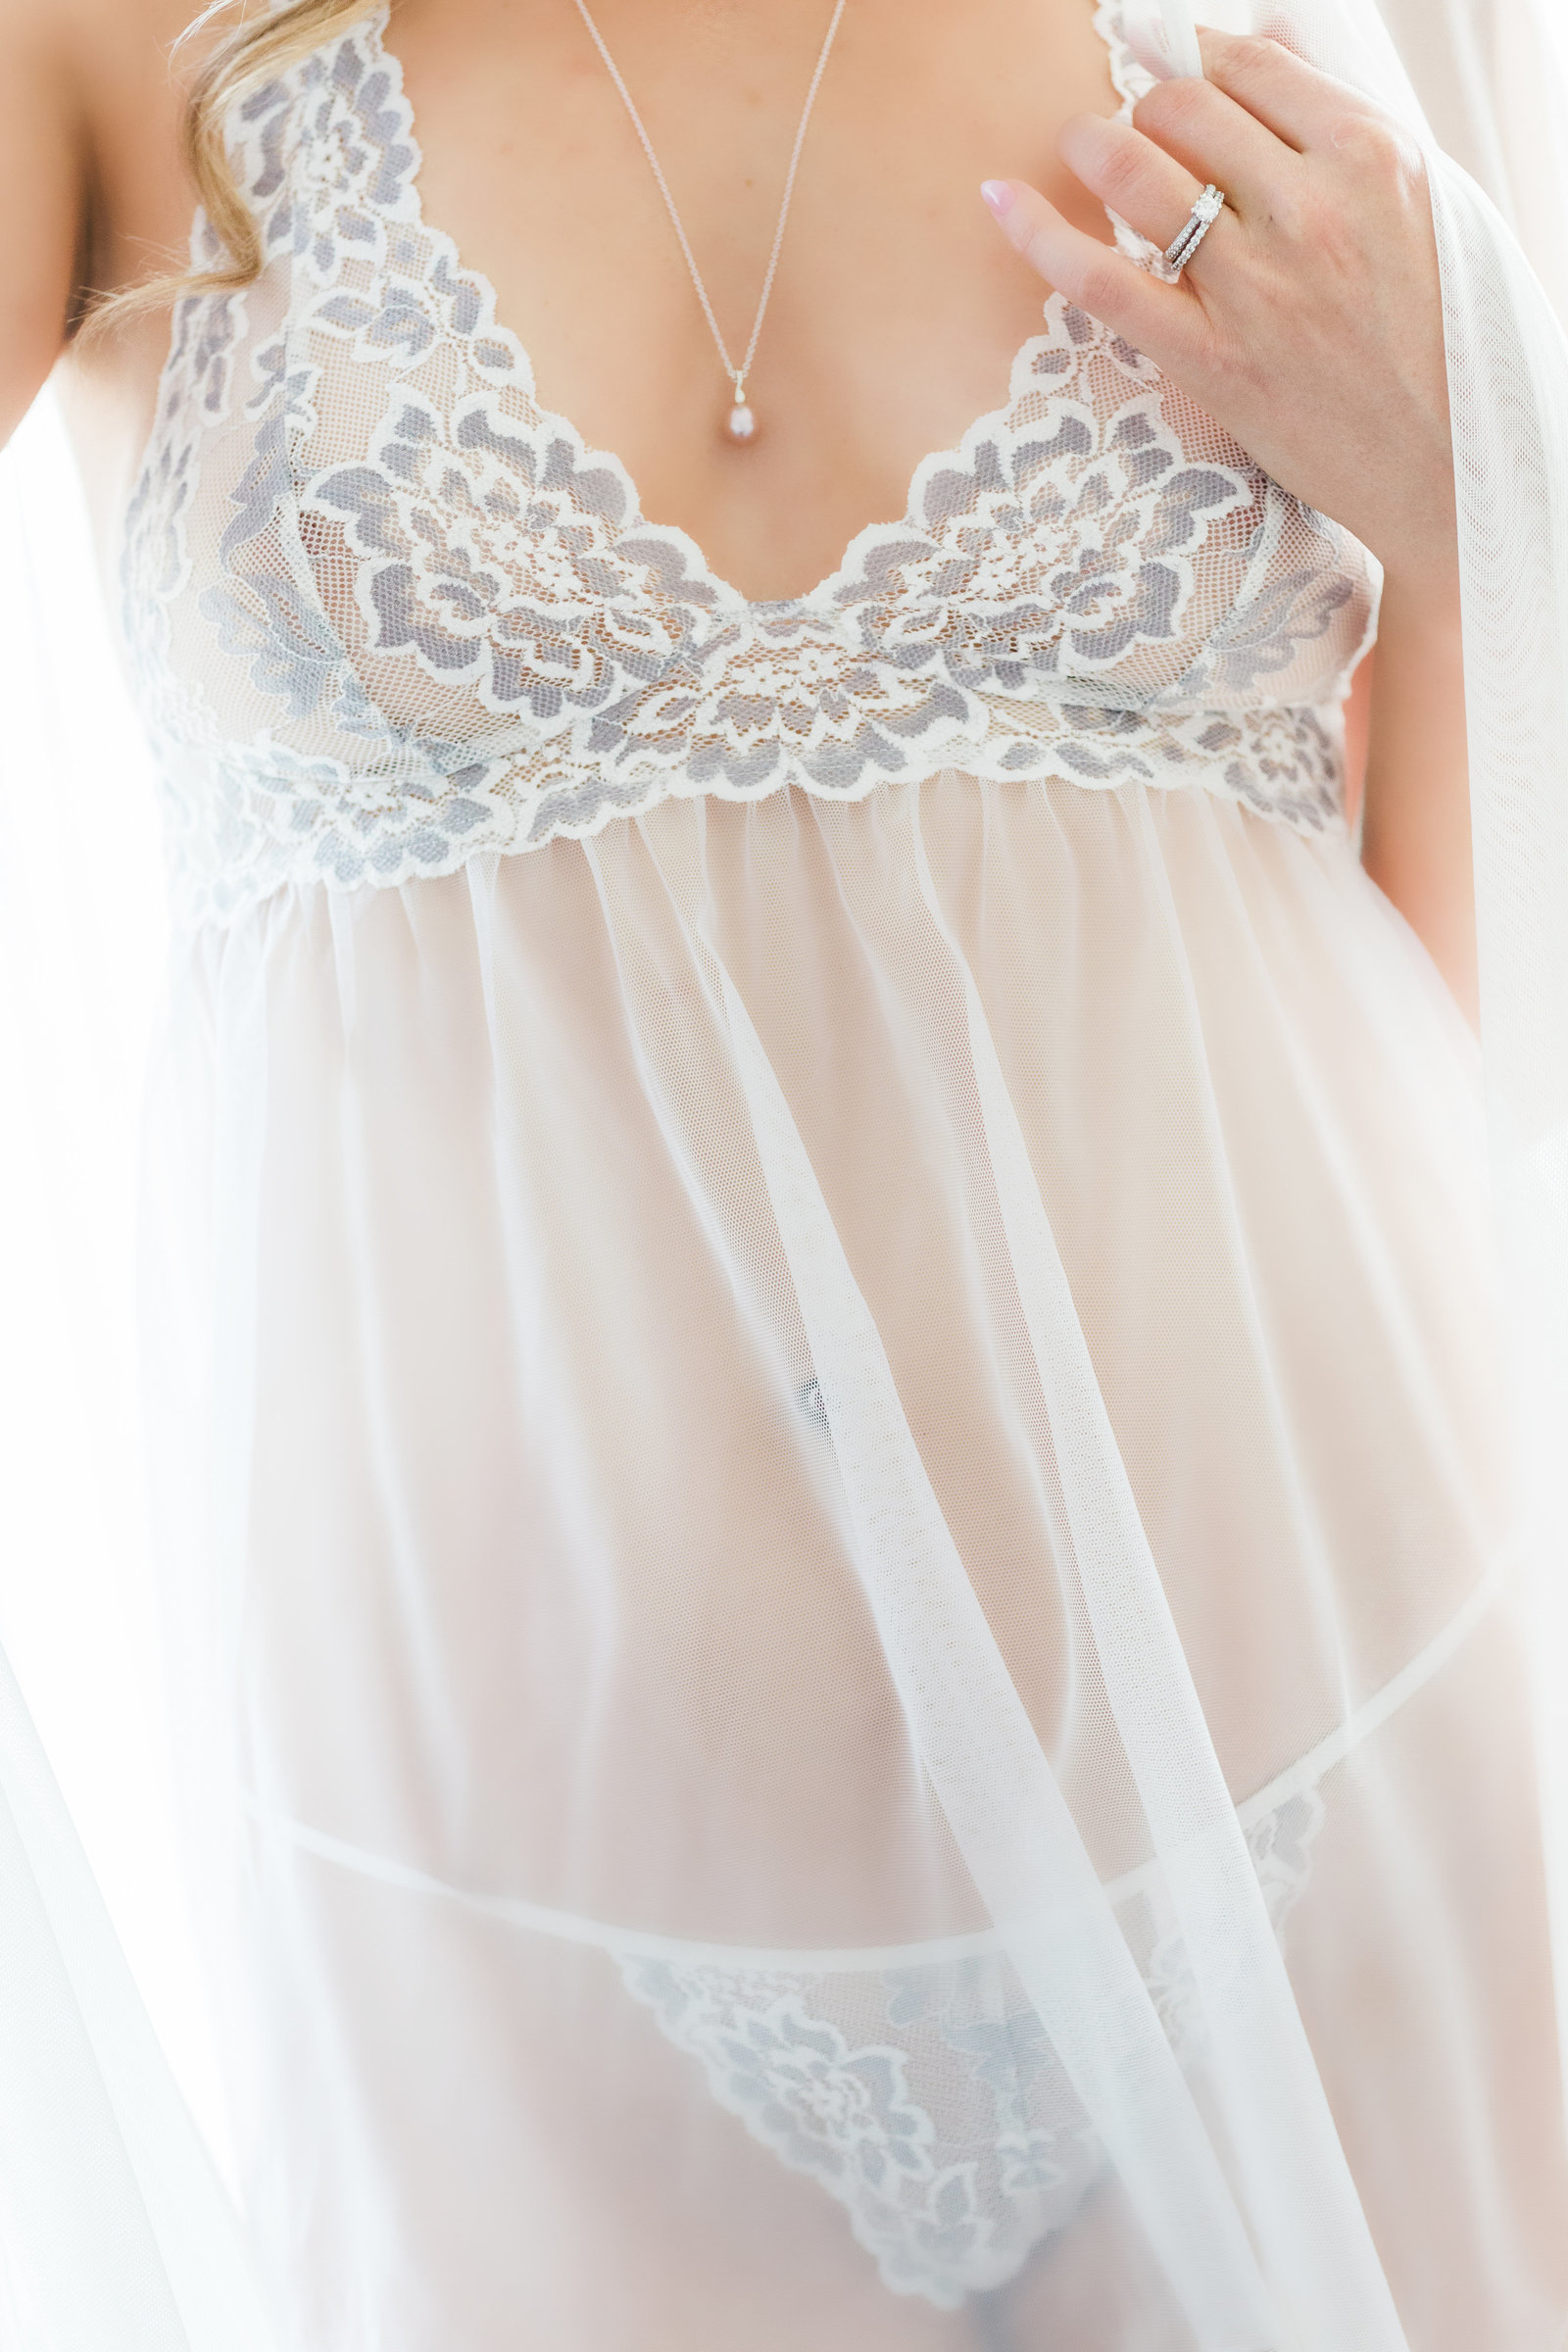 Virginia Beach Boudoir photographer